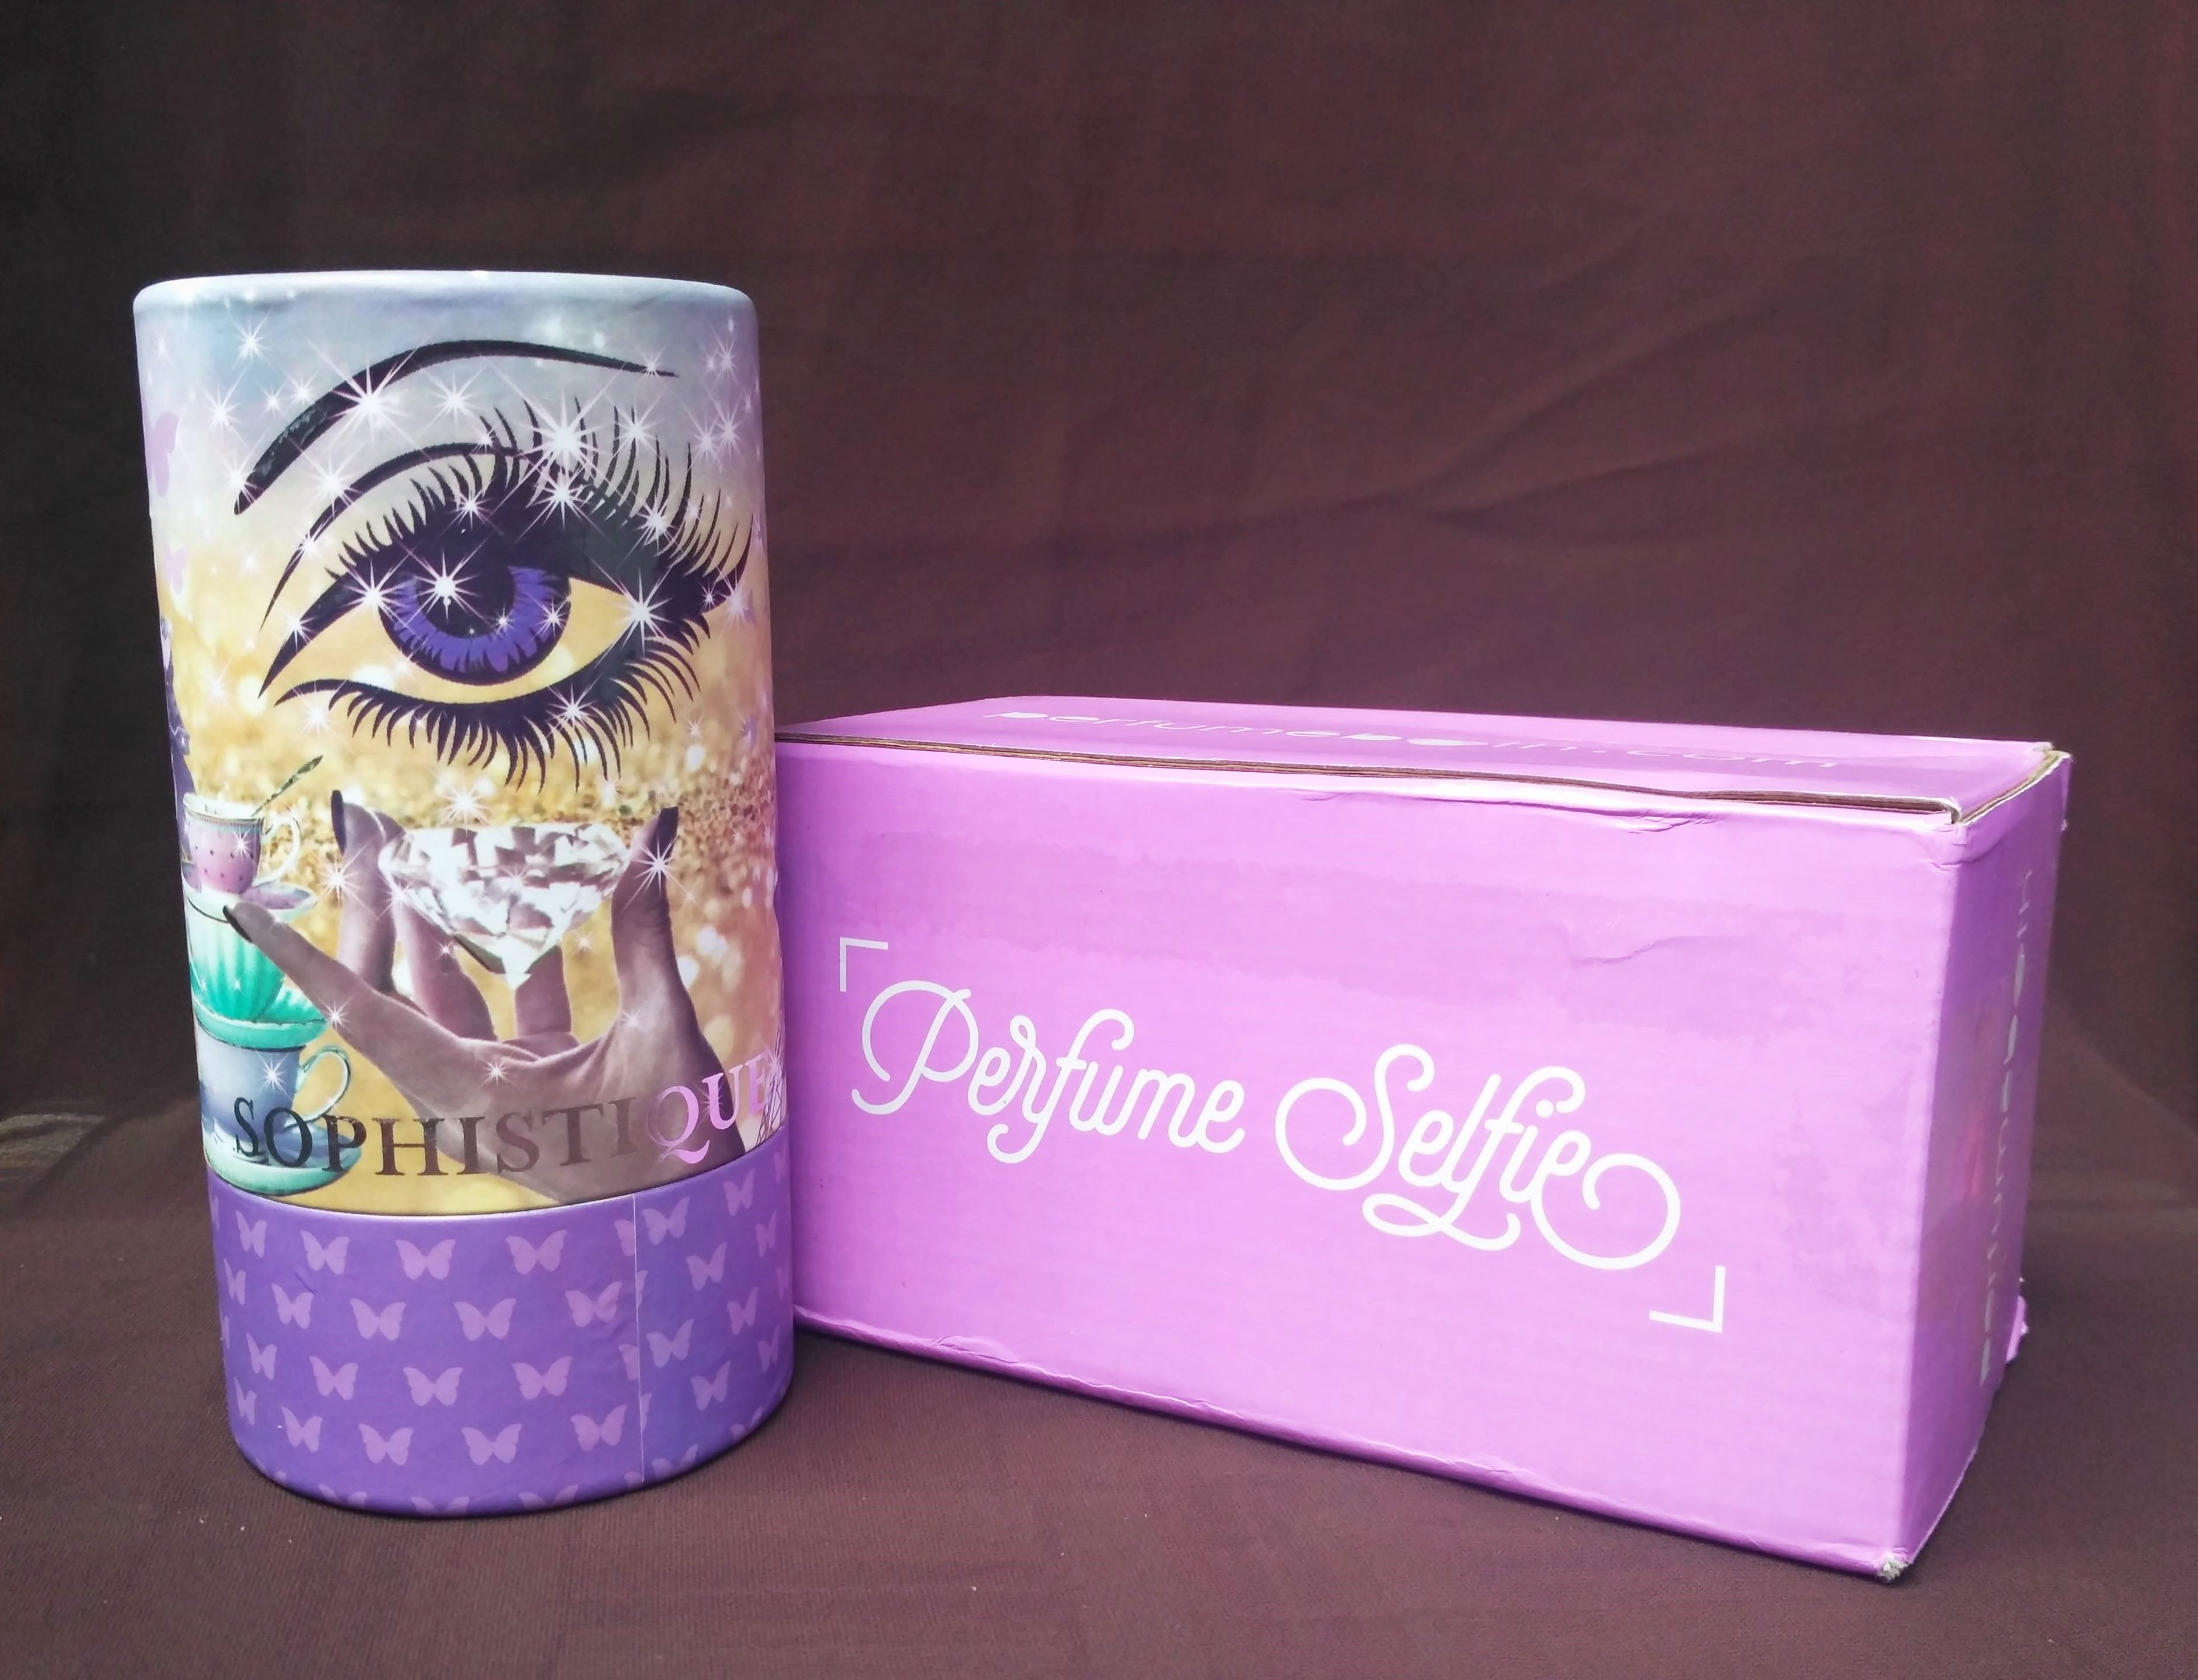 perfumebooth perfume selfie sophistique review e1501165647935